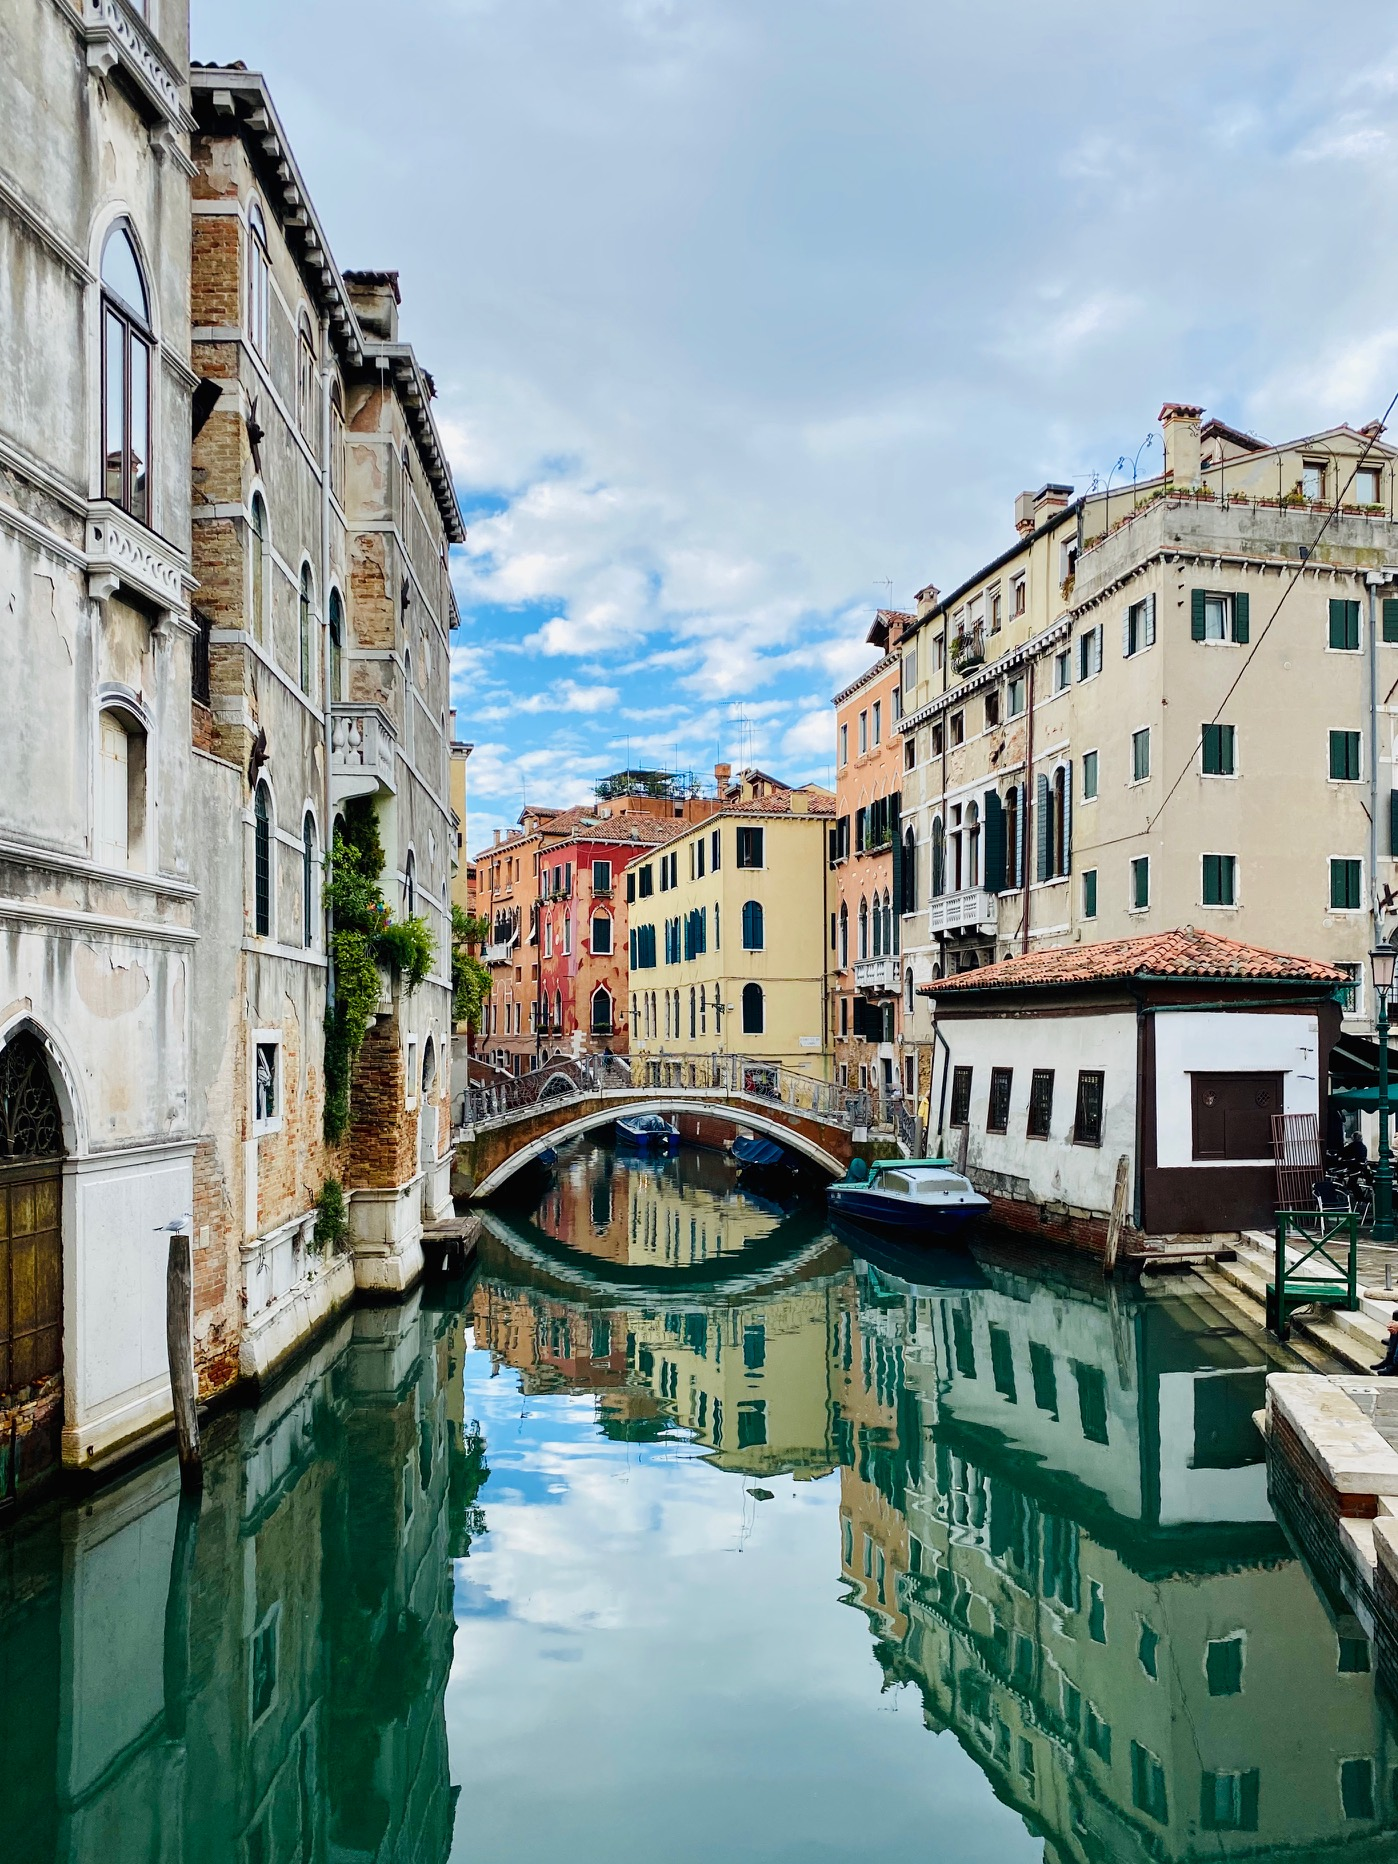 Venice Off The Beaten Track tour with Lucia Bondetti, tour guide and art historian